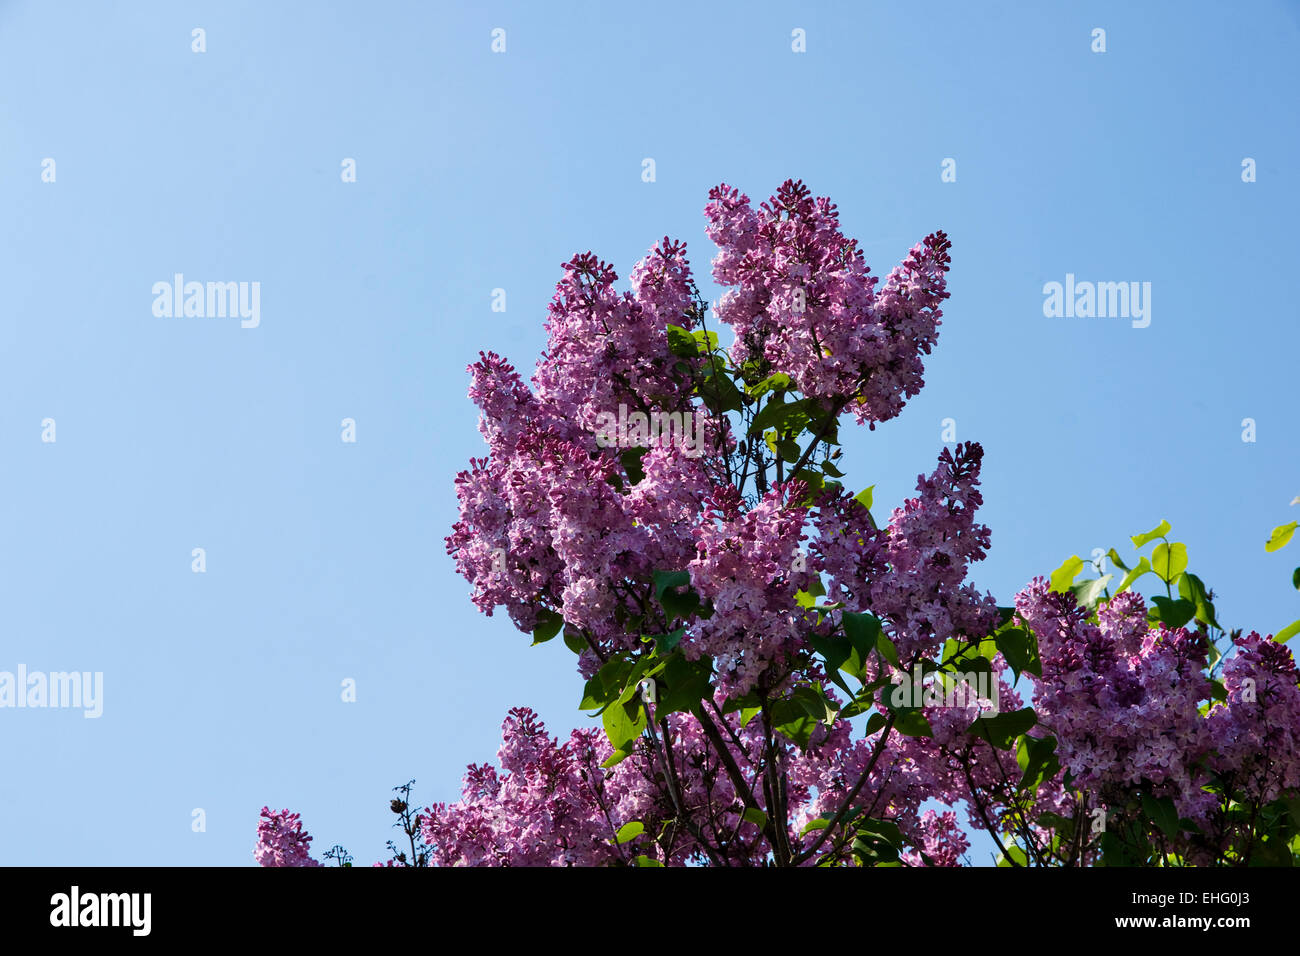 lilac bush blue sky spring stockfotos lilac bush blue. Black Bedroom Furniture Sets. Home Design Ideas